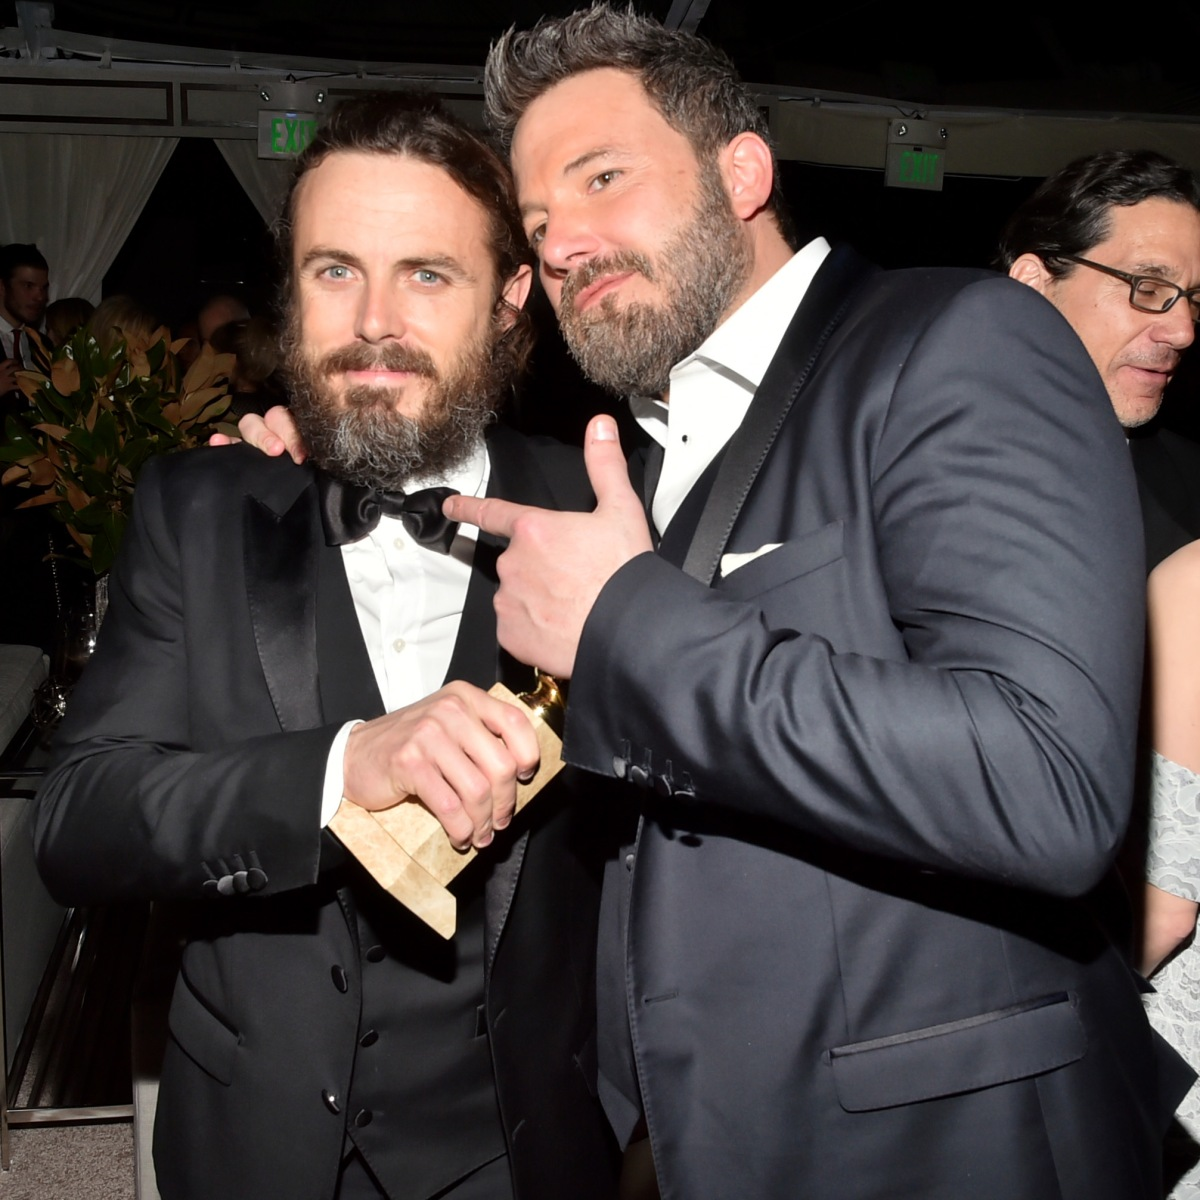 Who Is Casey Affleck? Get to Know Ben Affleck's Younger Brother